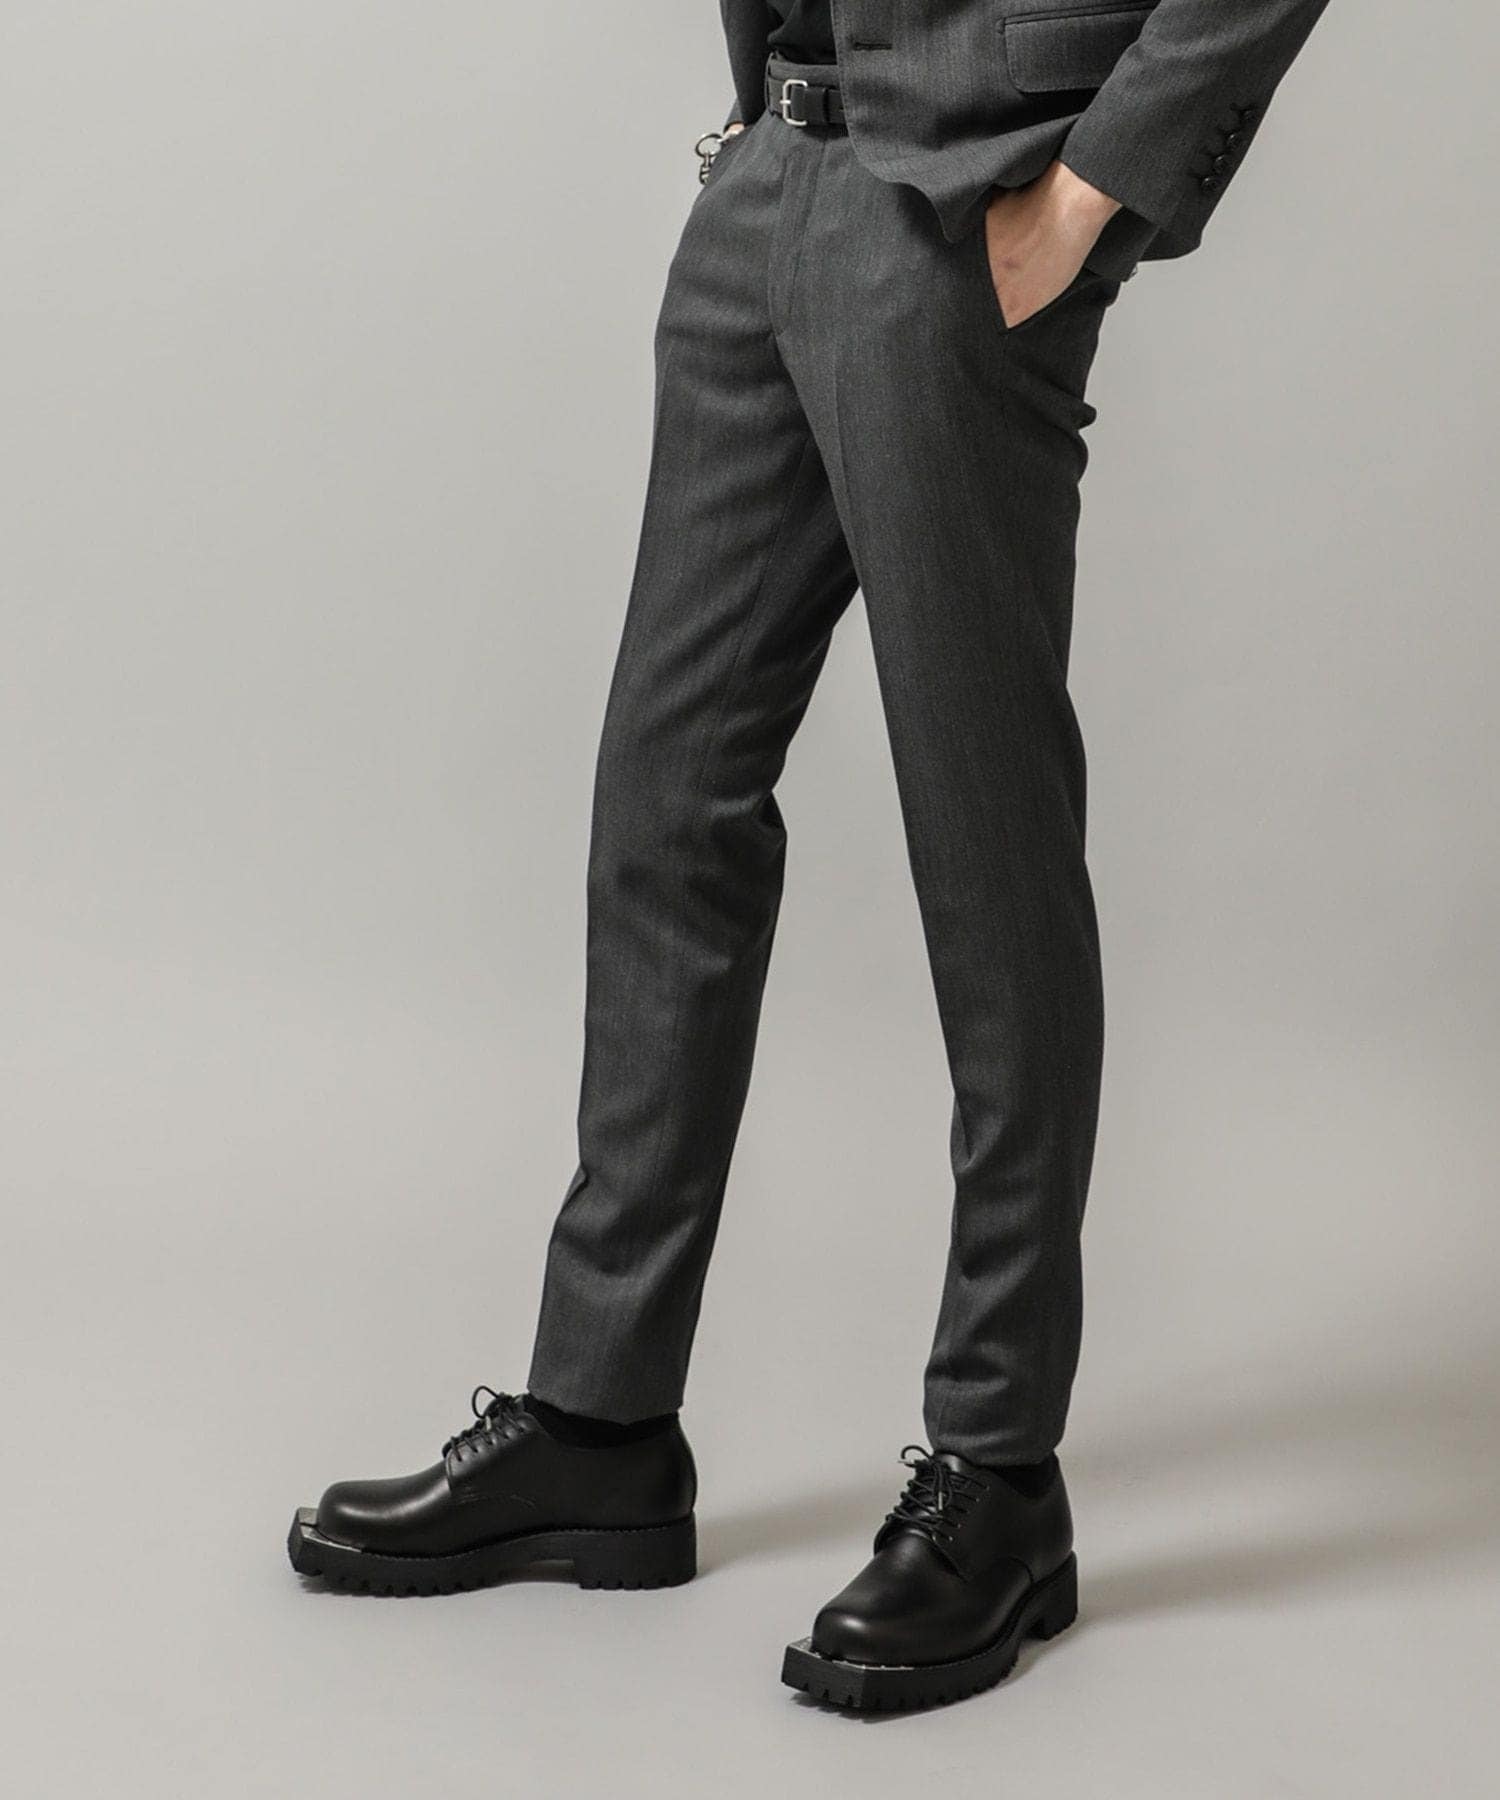 WOOL SKINNY TROUSERS JOHN LAWRENCE SULLIVAN